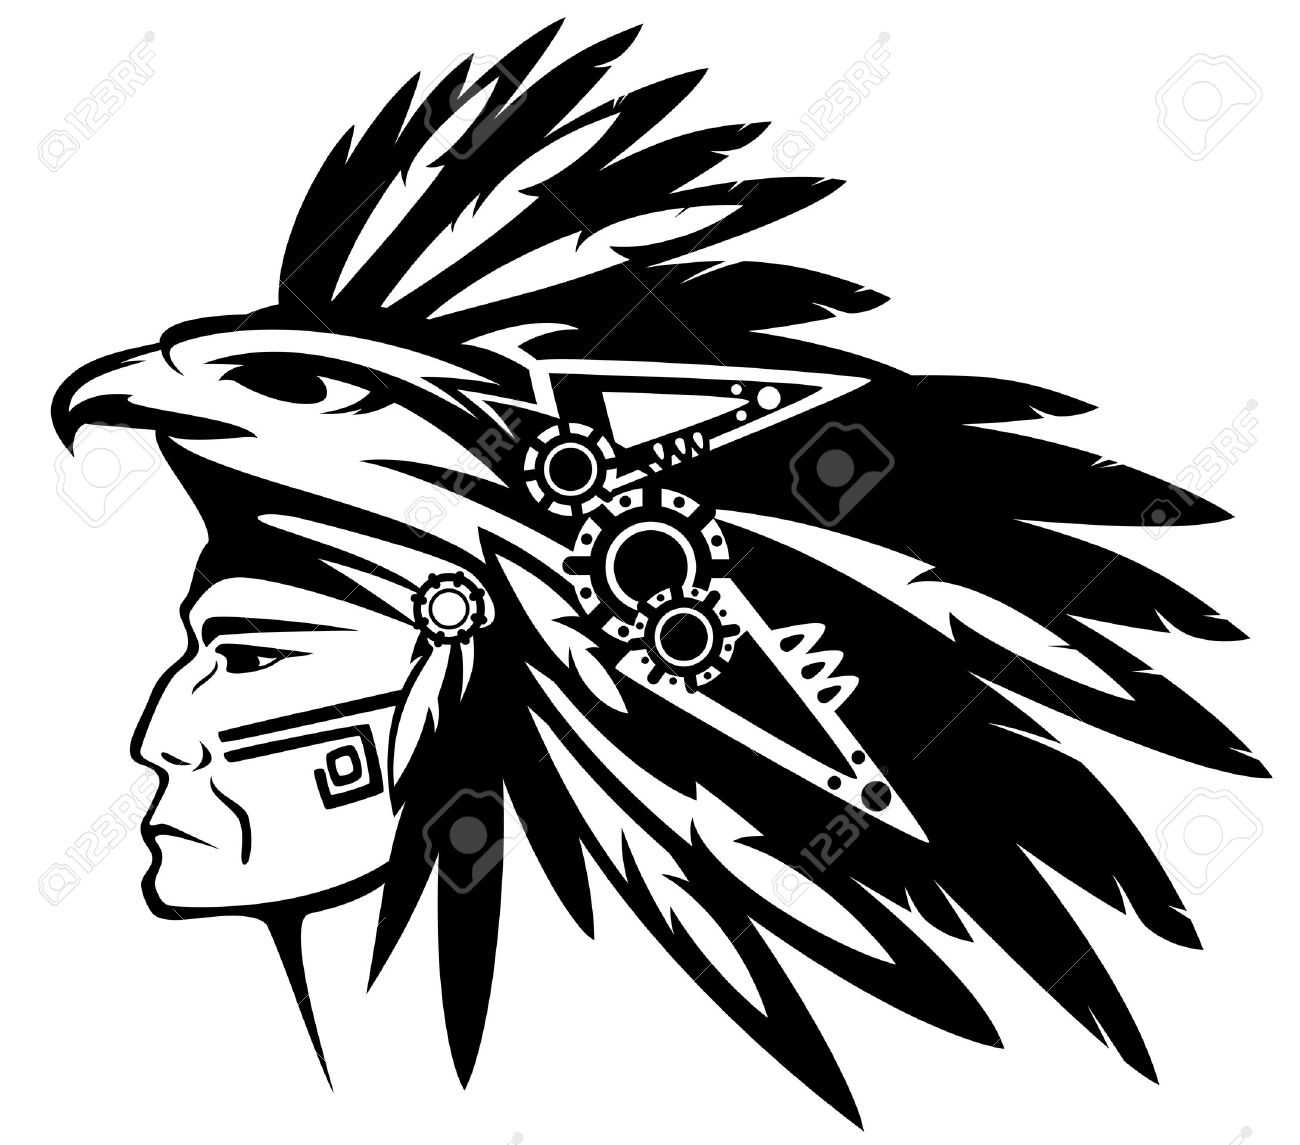 aztec tribe warrior wearing feather headdress with eagle profile head - black and white vector outline - 29291547